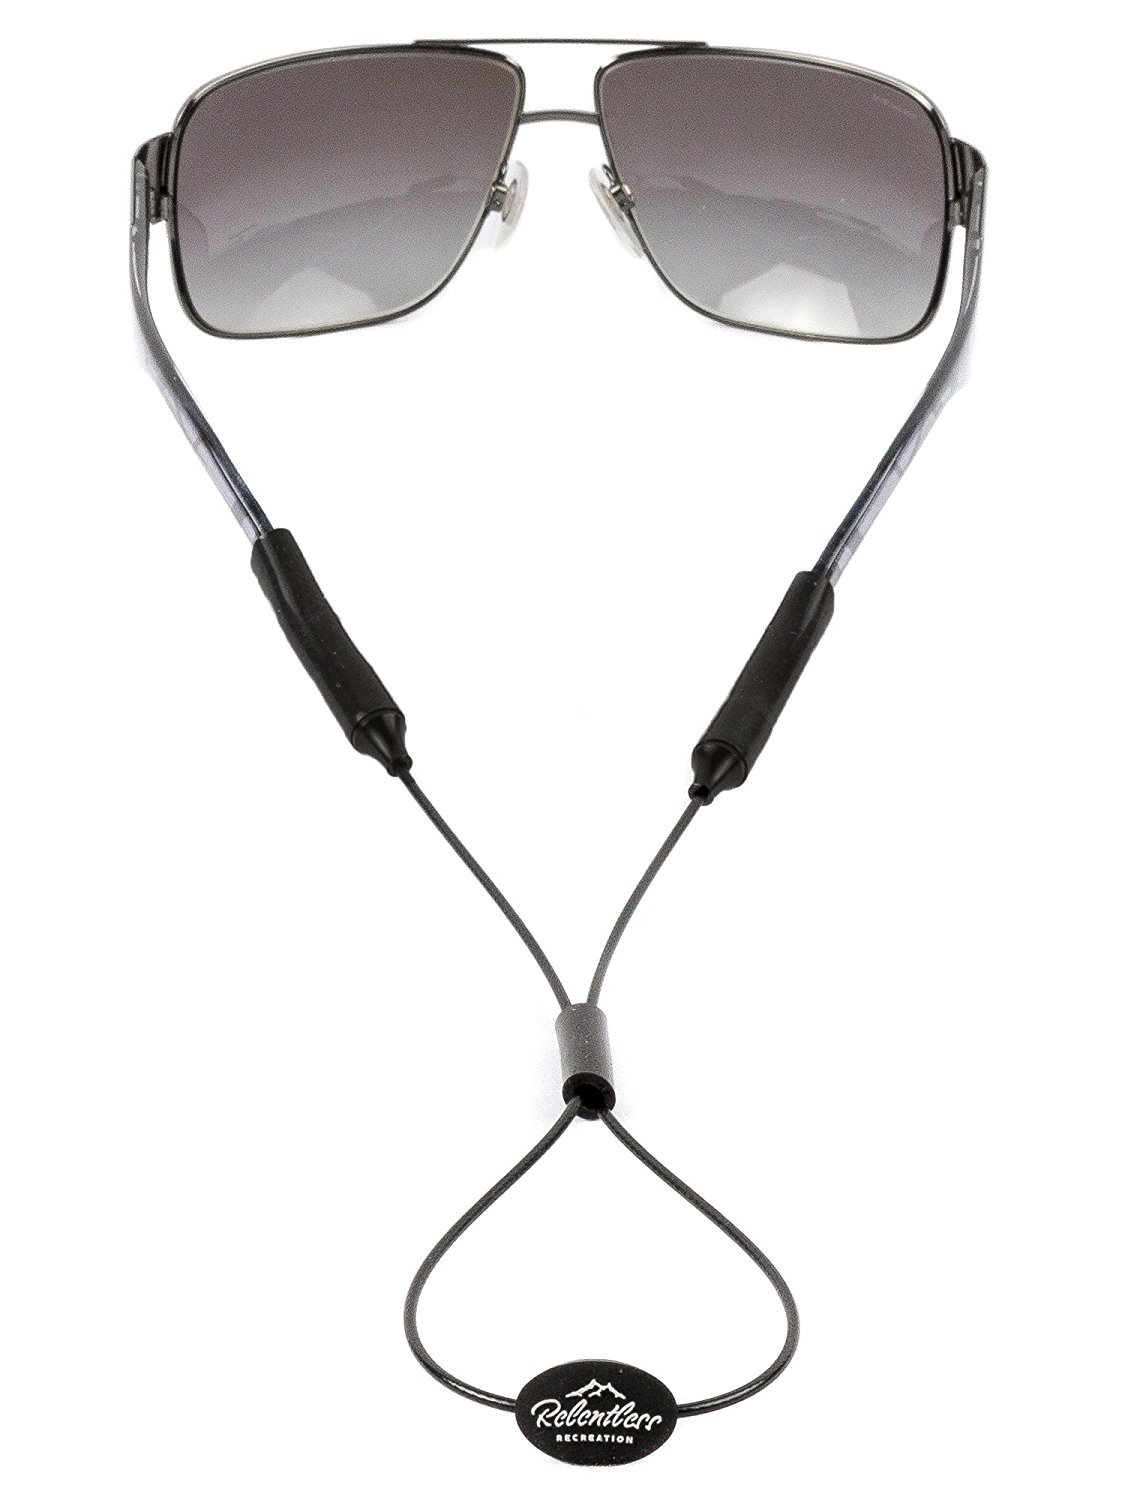 1125x1500 Rec Strapz Sunglasses Eyewear Retainer System For Active